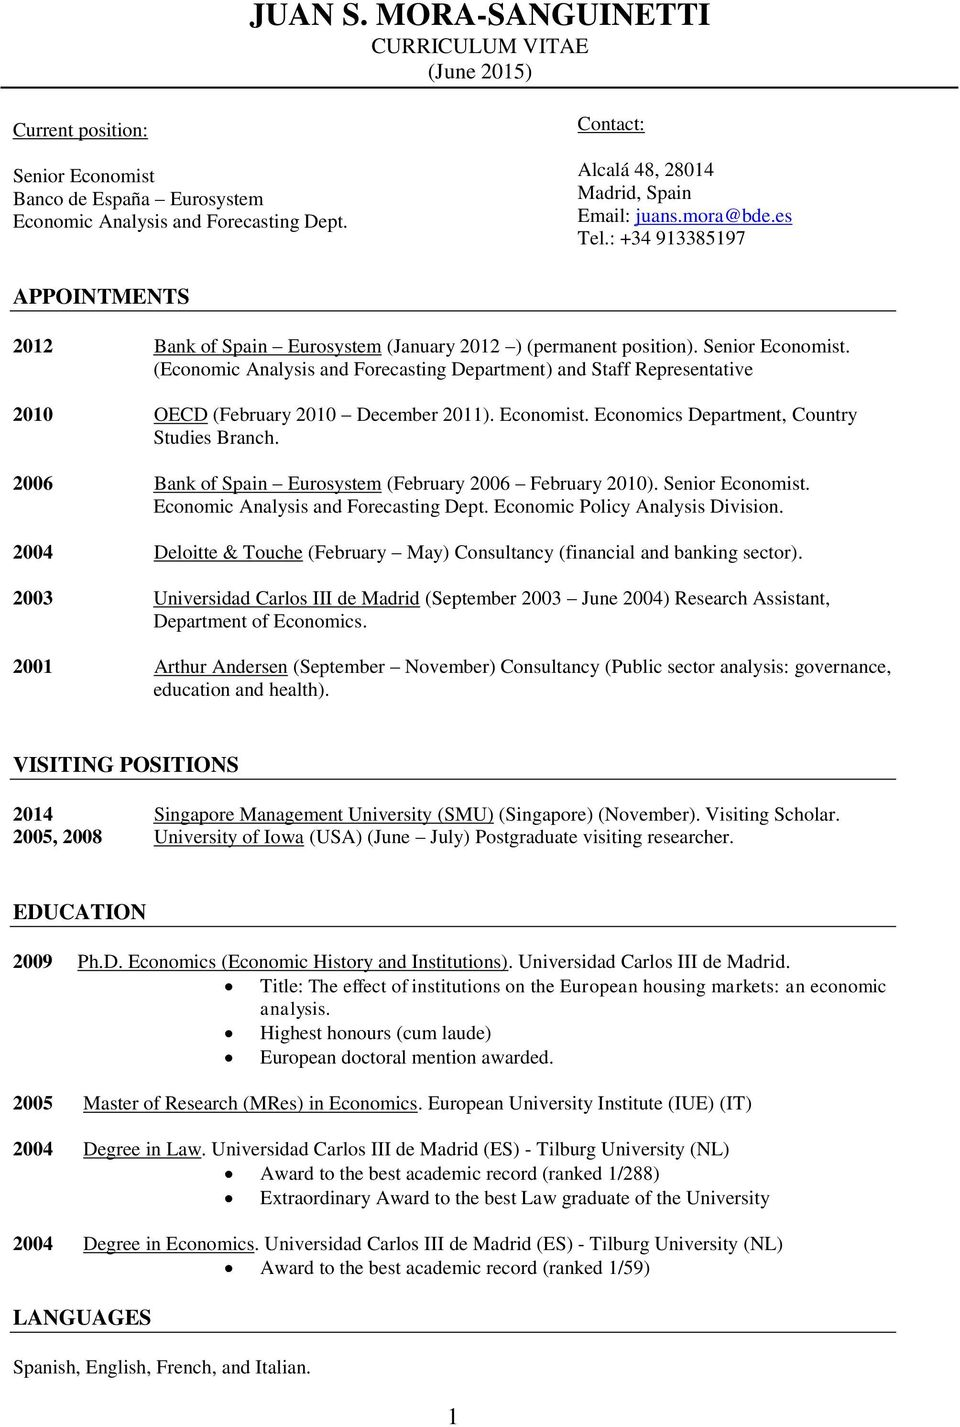 (Economic Analysis and Forecasting Department) and Staff Representative 2010 OECD (February 2010 December 2011). Economist. Economics Department, Country Studies Branch.